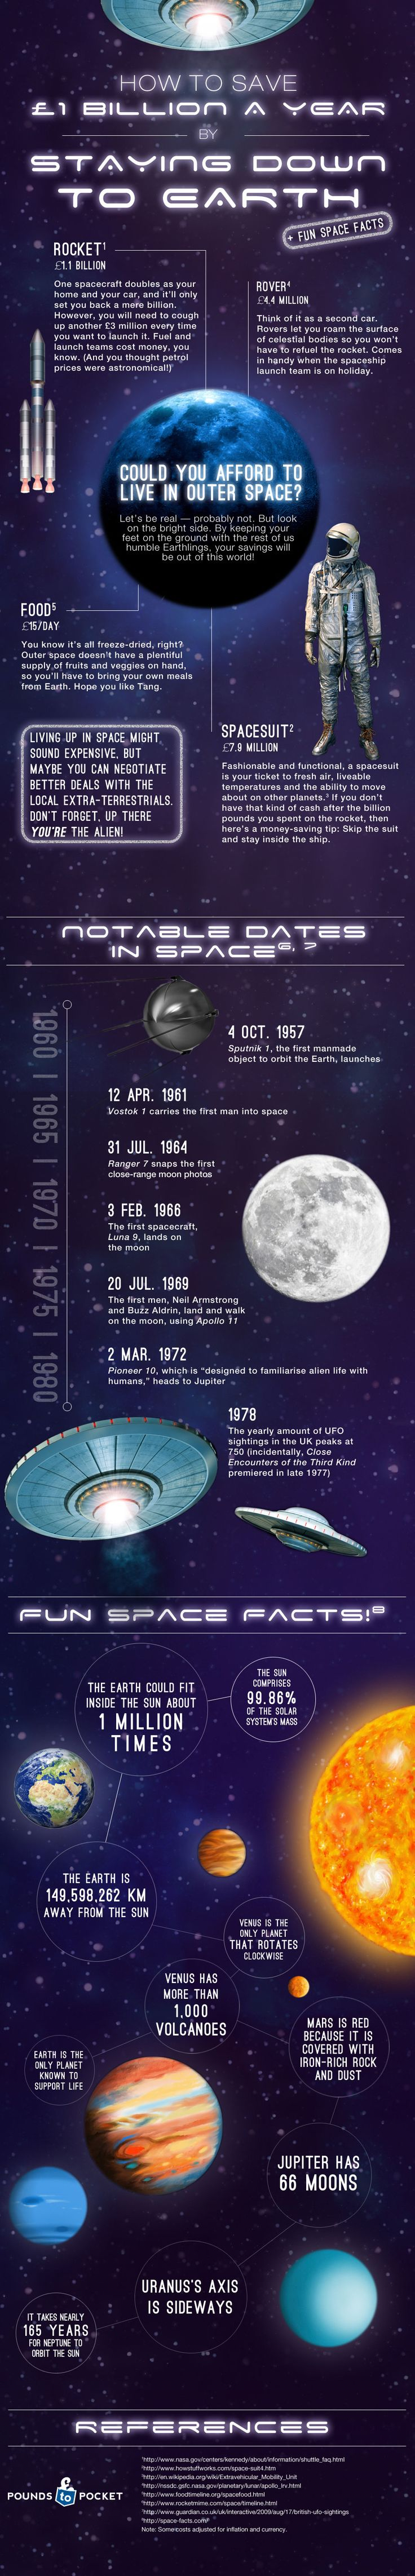 Fun facts about outer space: http://poundstopocket.co.uk/pound-place/saving-money-cat/infographic-how-to-save-1-billion-a-year-staying-down-to-earth